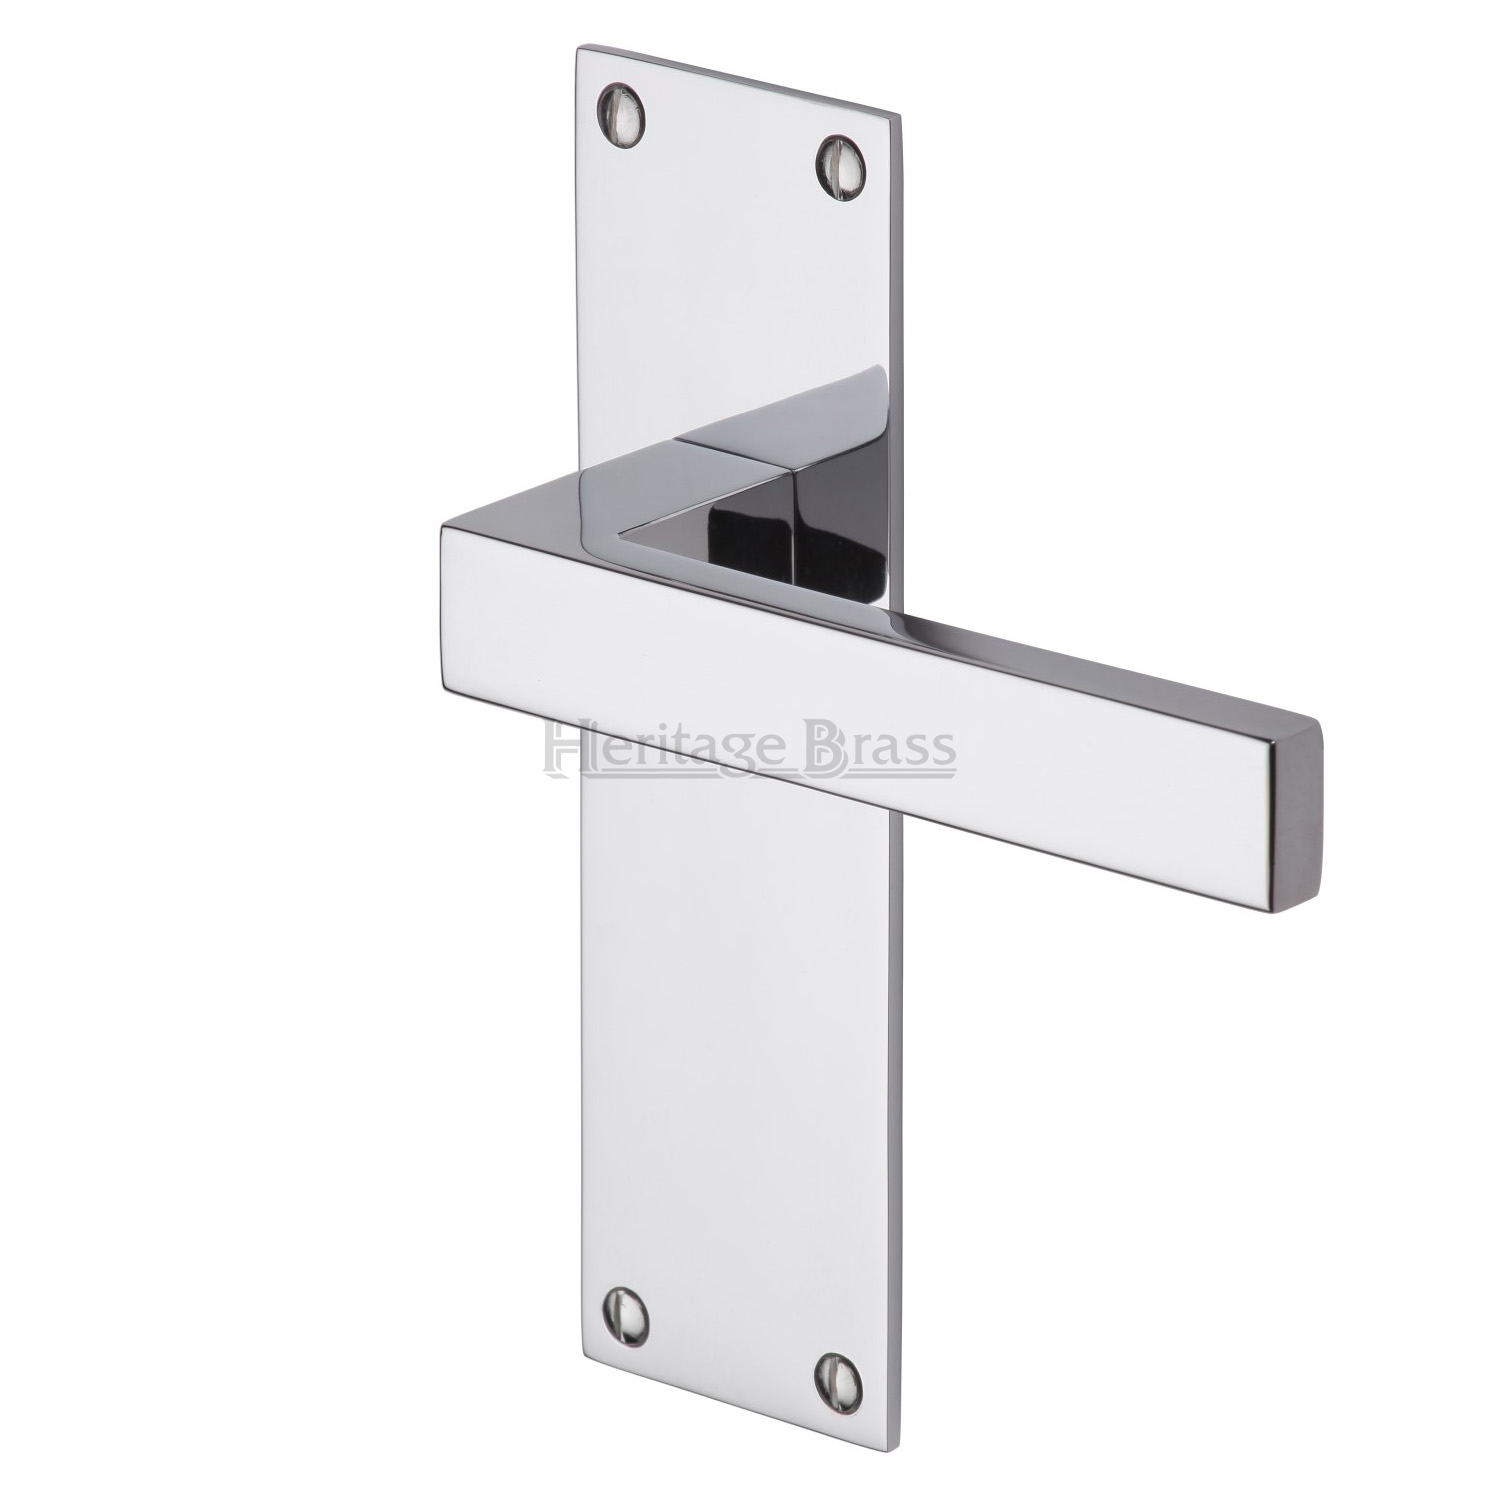 Accessories - Metro Lever Latch on Plate